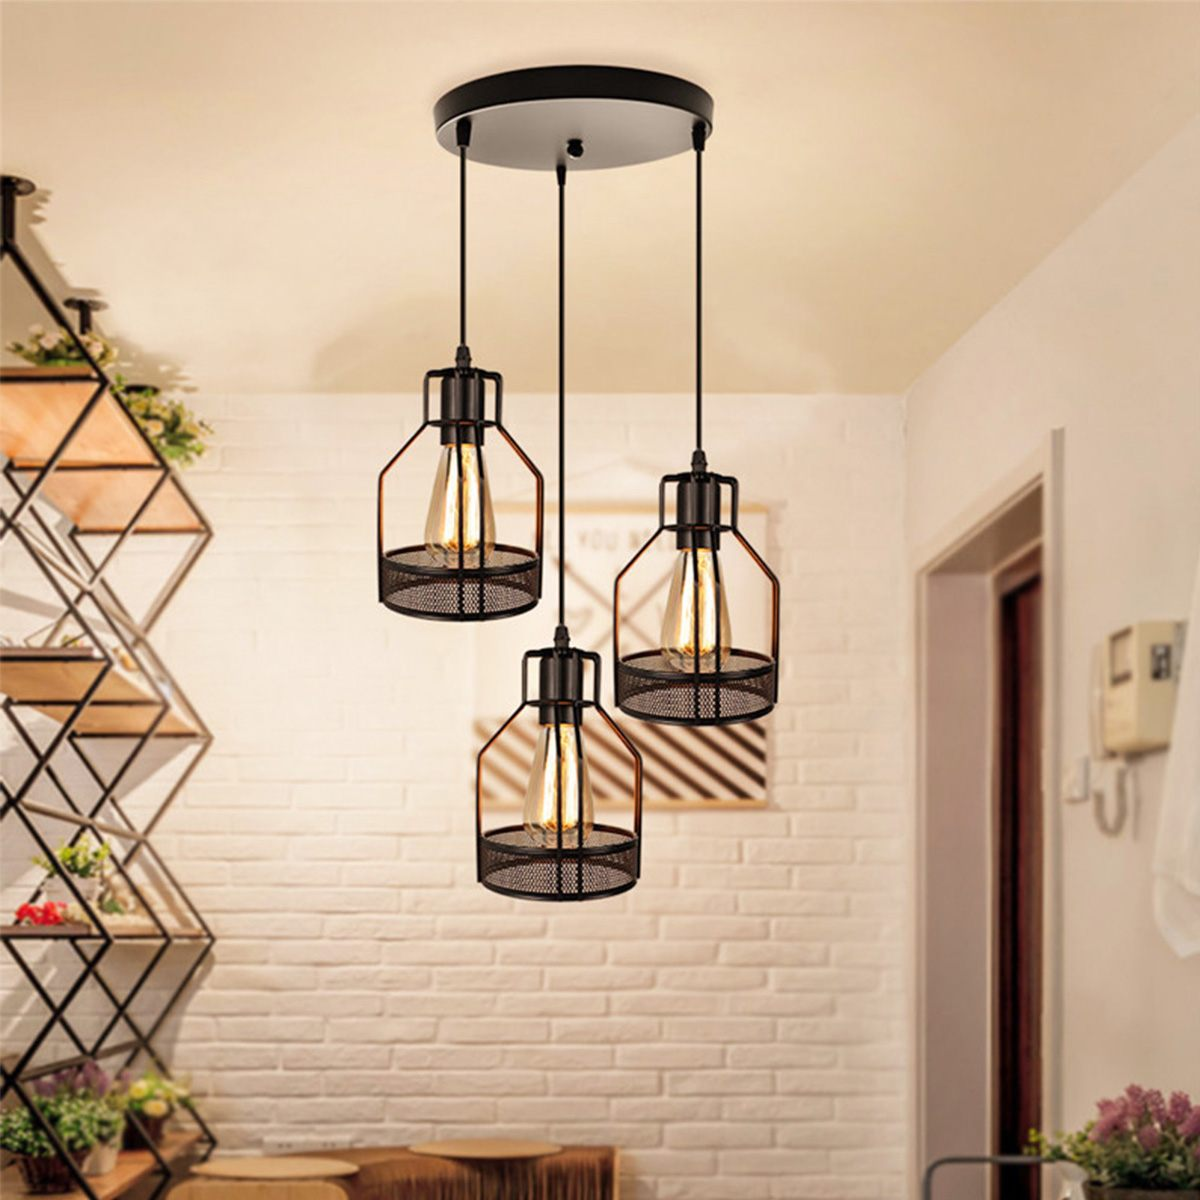 Vintage Industrial Pendant Light Iron Retro Loft Hanging Lamp For Living Room Kitchen Cafe Bar Home Light Fixtures